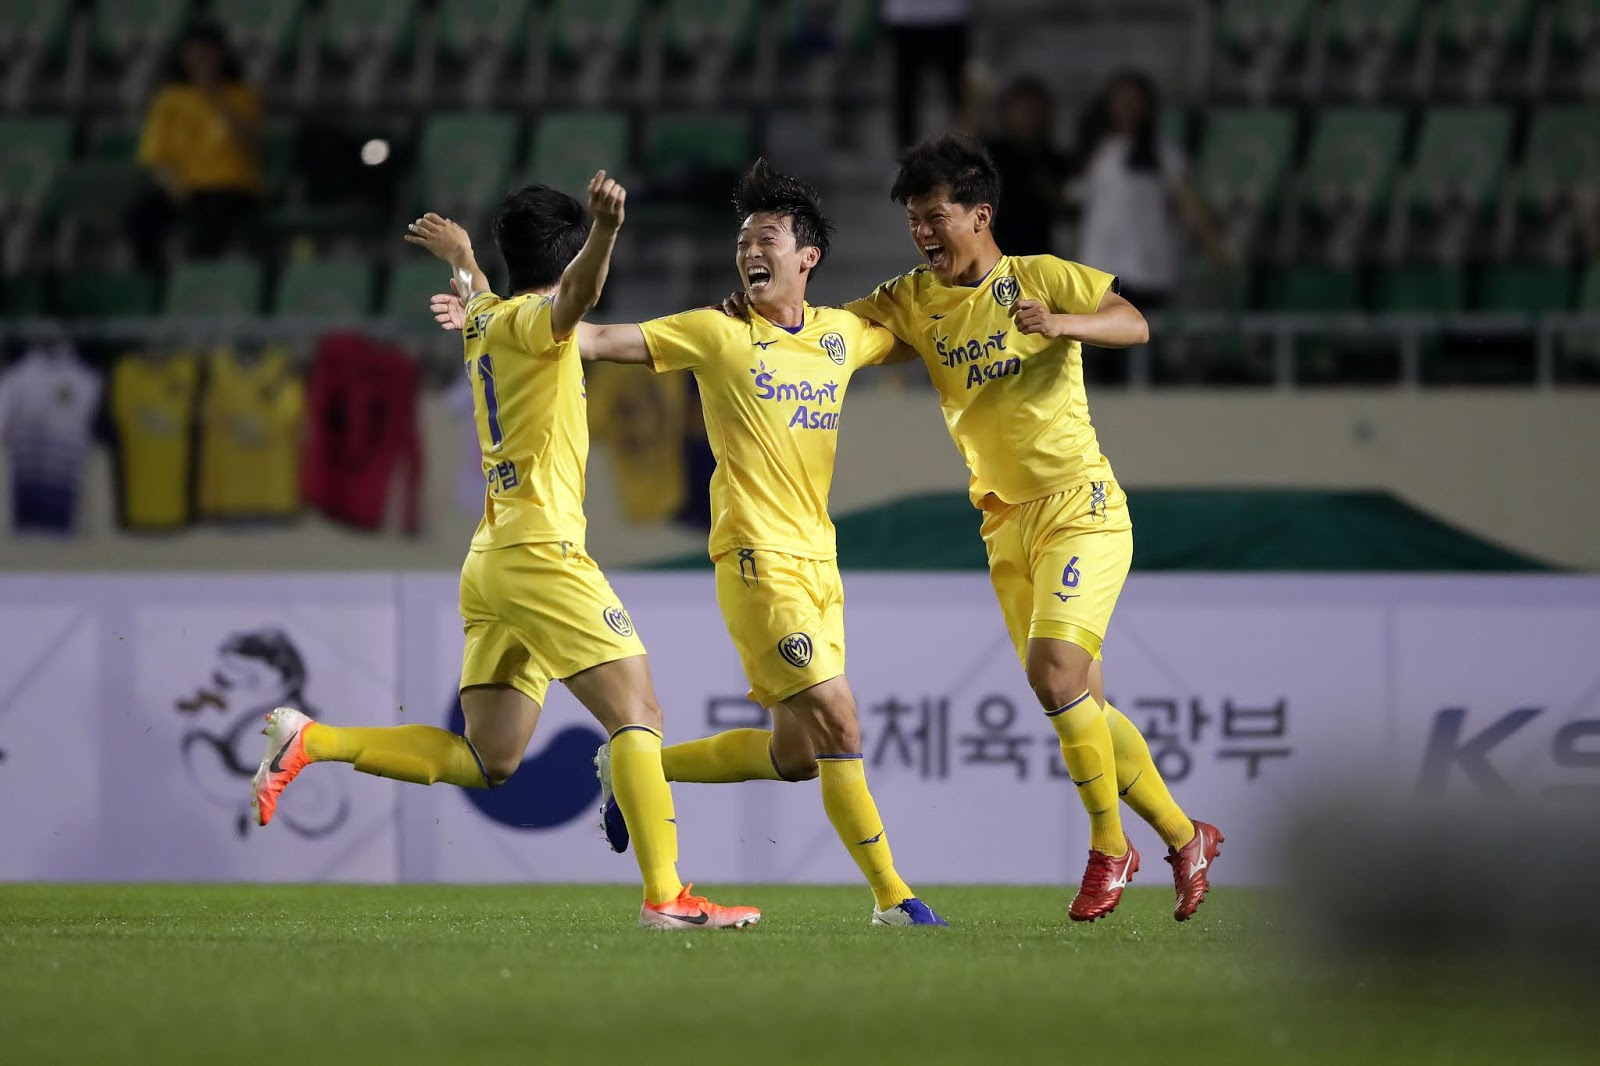 Preview: Asan Mugunghwa vs Jeonnam Dragons K League 2 Round 18